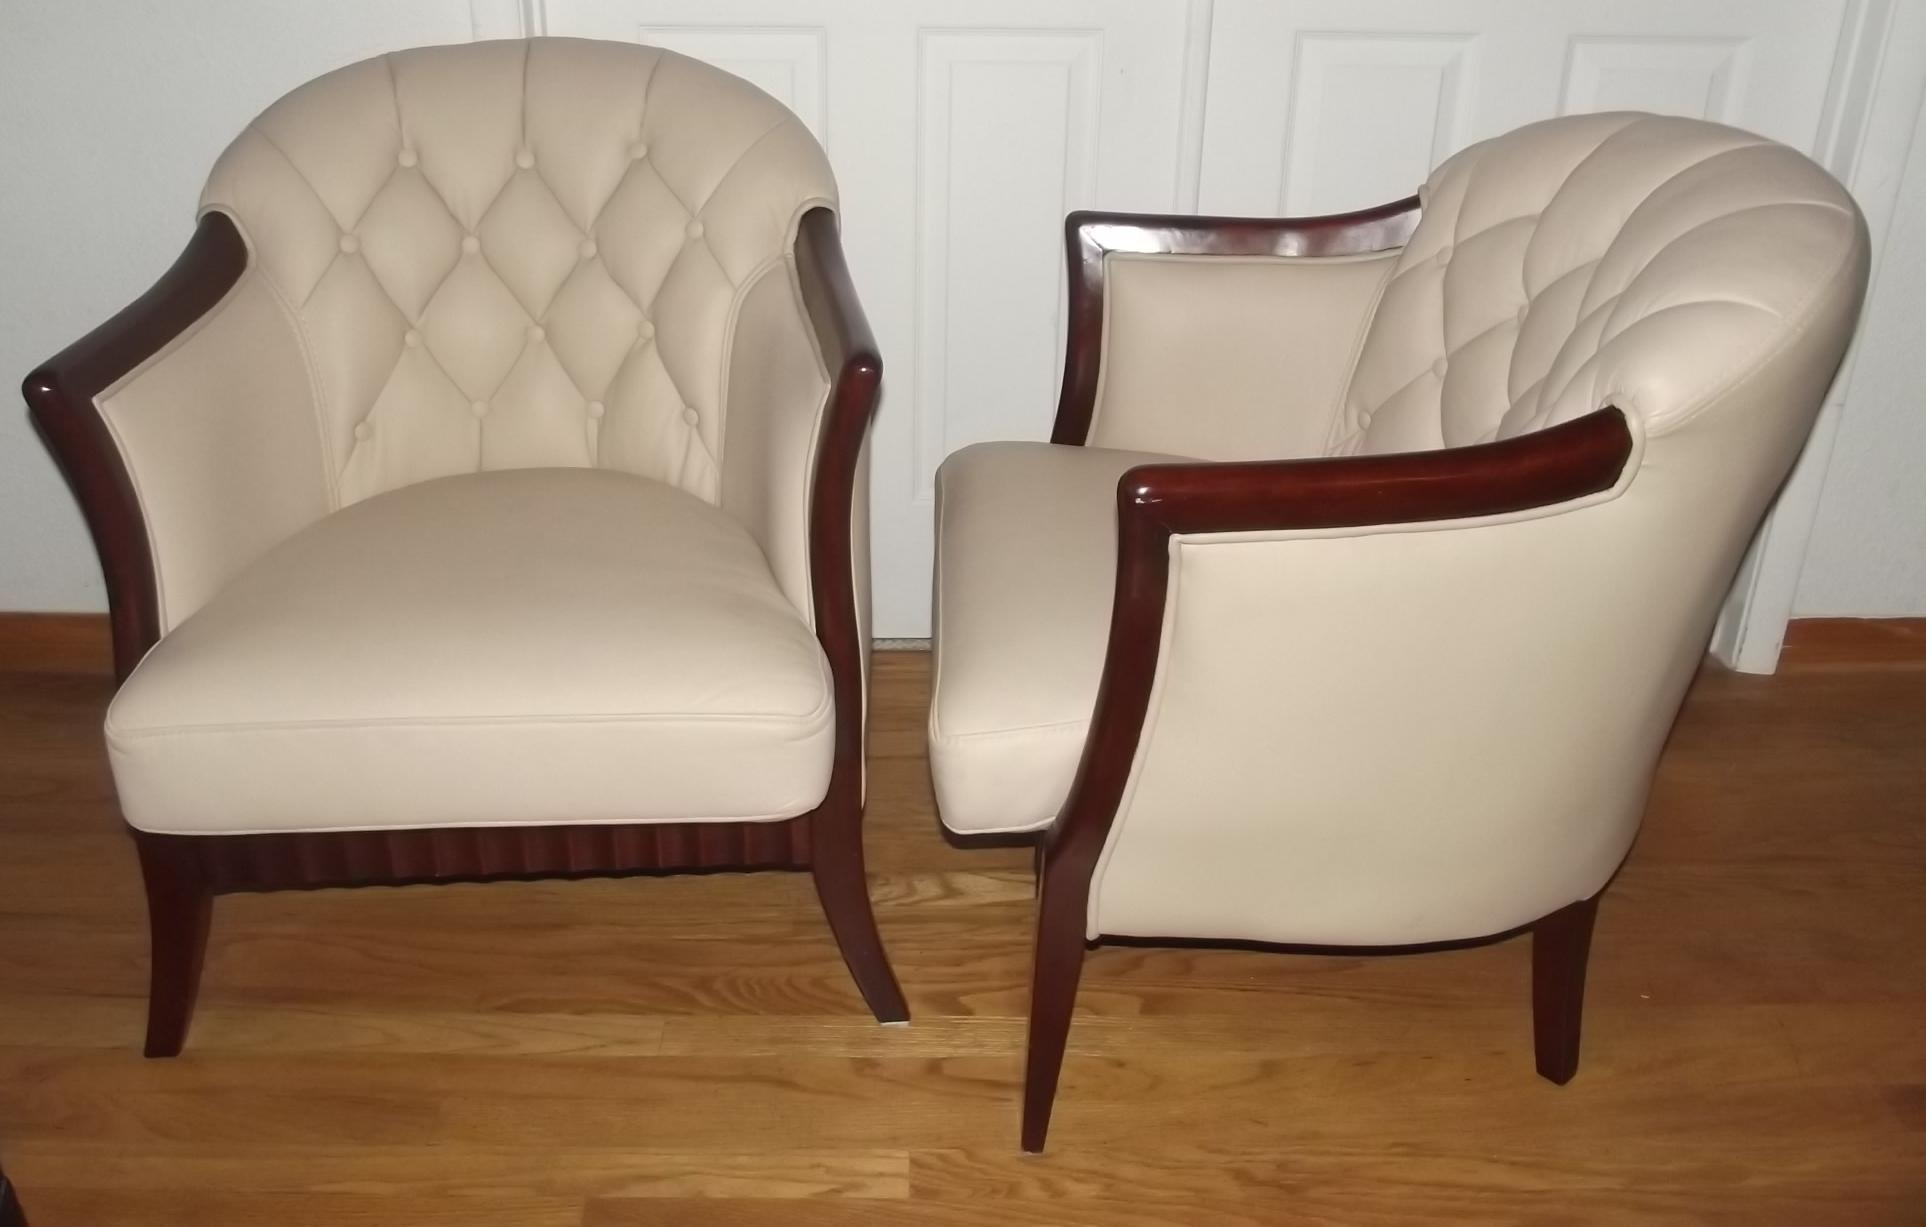 Incredibly Stylish Pair Of Art Deco Club Chairs. These Beautiful Chairs  Have Great Detail And